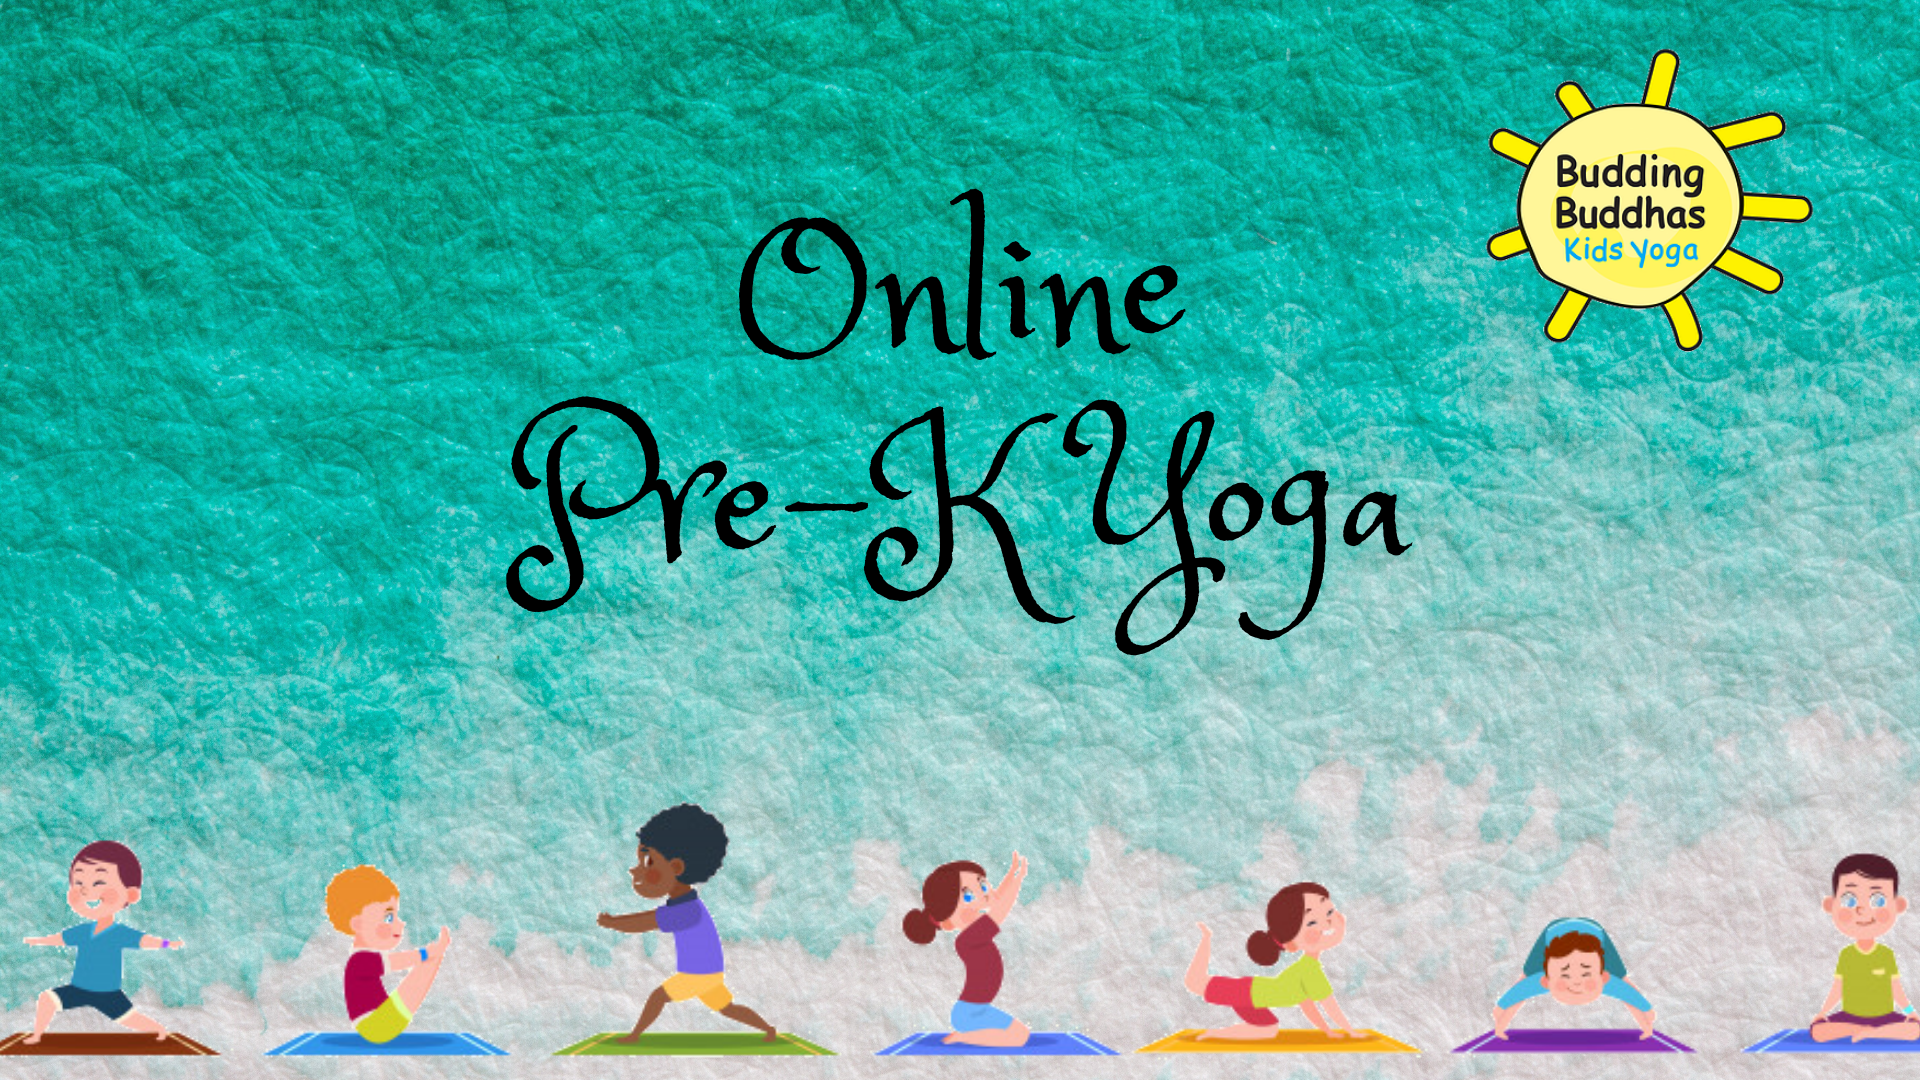 Online Pre-K Yoga - Ages 2.5 - 5 years